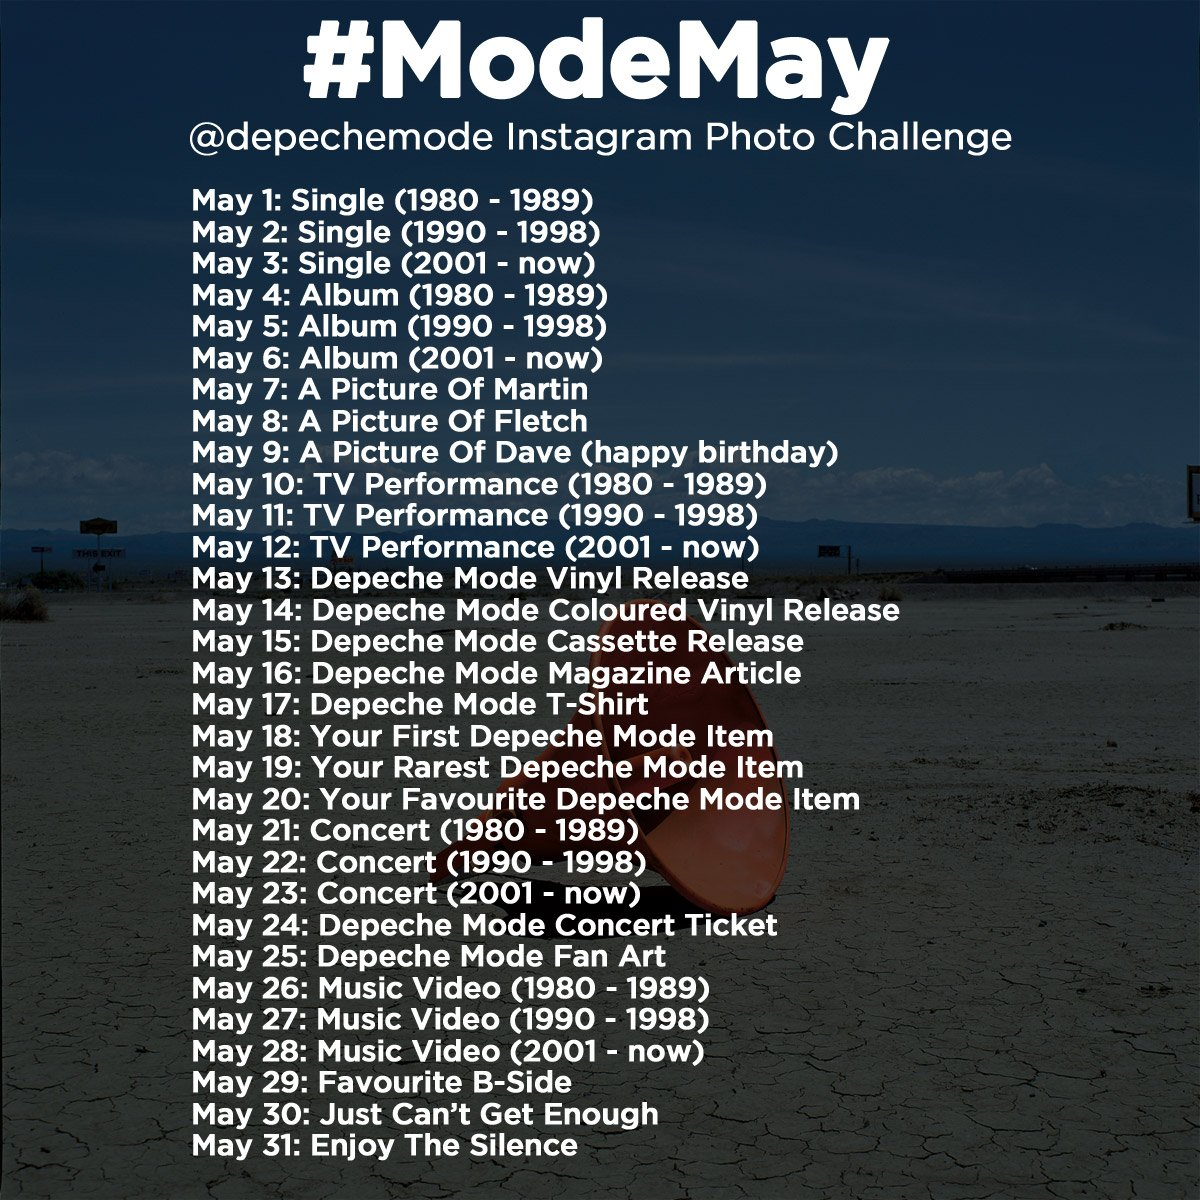 It is time for the #ModeMay photo challenge on Twitter and Instagram! Full details: https://t.co/Xxv9KlrmDG https://t.co/FrzsLI1Fcc